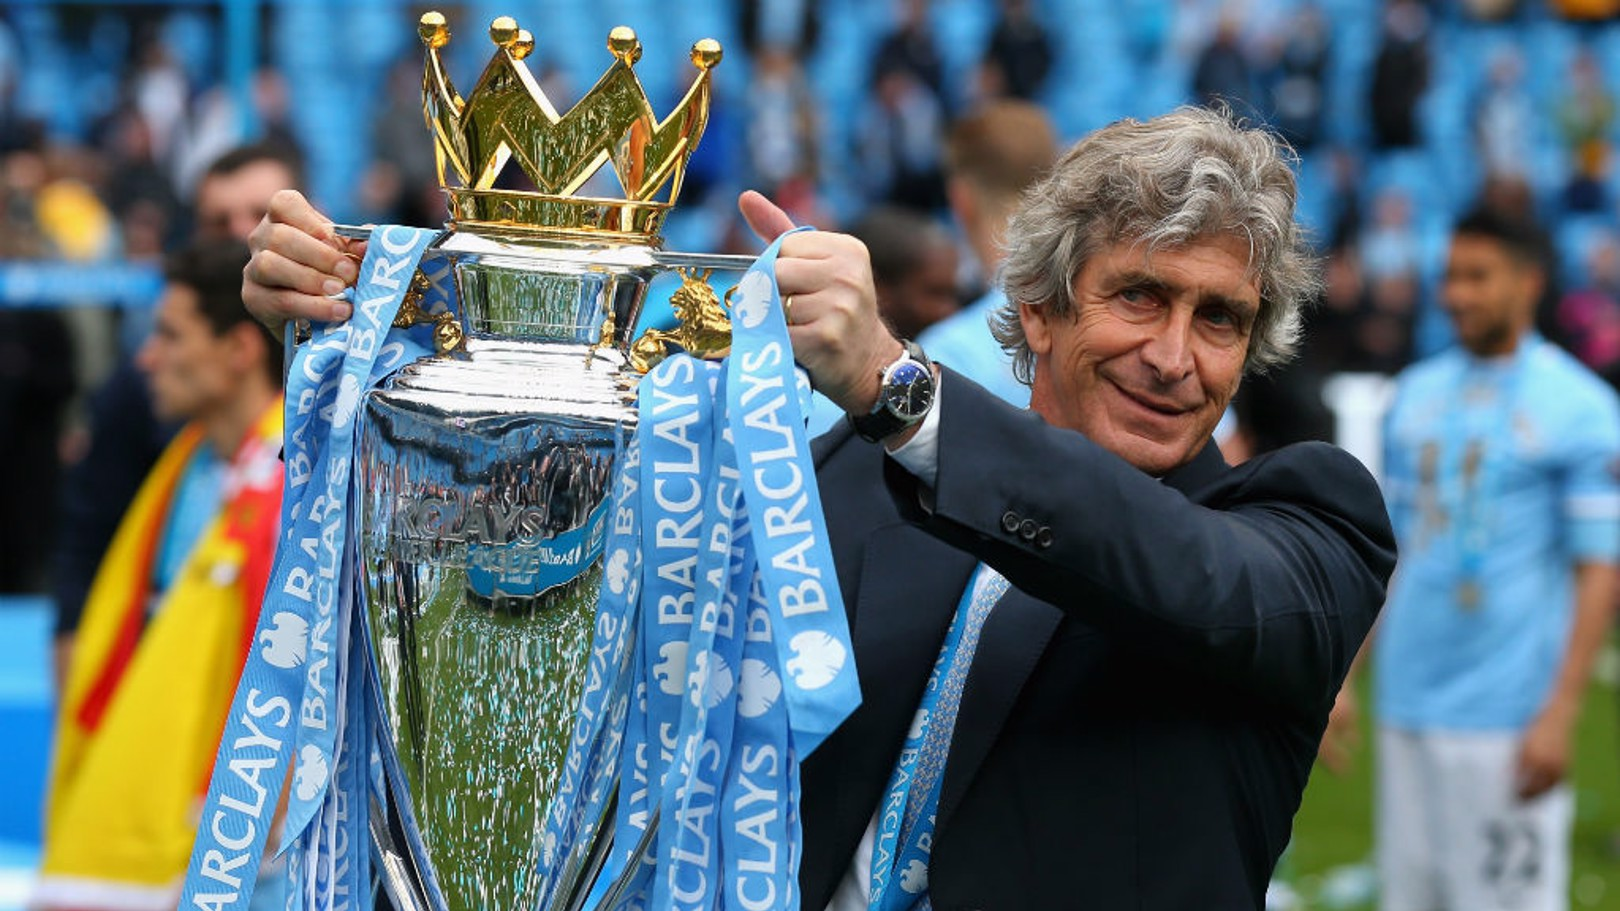 PELLEGRINI'S CITY 2013/14: Goals galore and silverware.